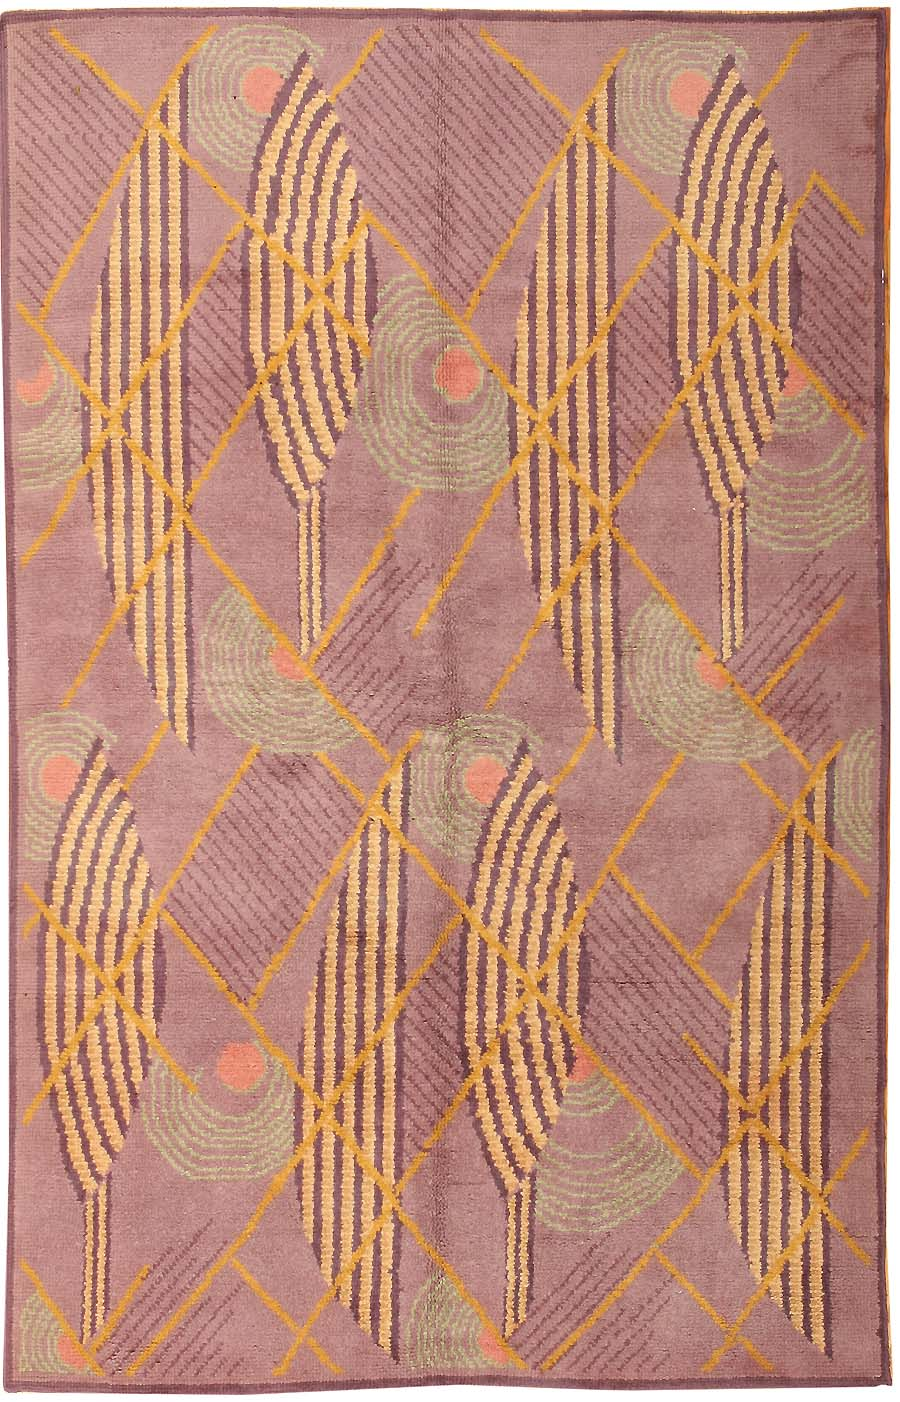 Art Deco Rug, Circa 1920u0027s This Stunningly Classic Art Deco Carpet Revels  In The Beauty Of Pure Geometry And Exquisite Color.